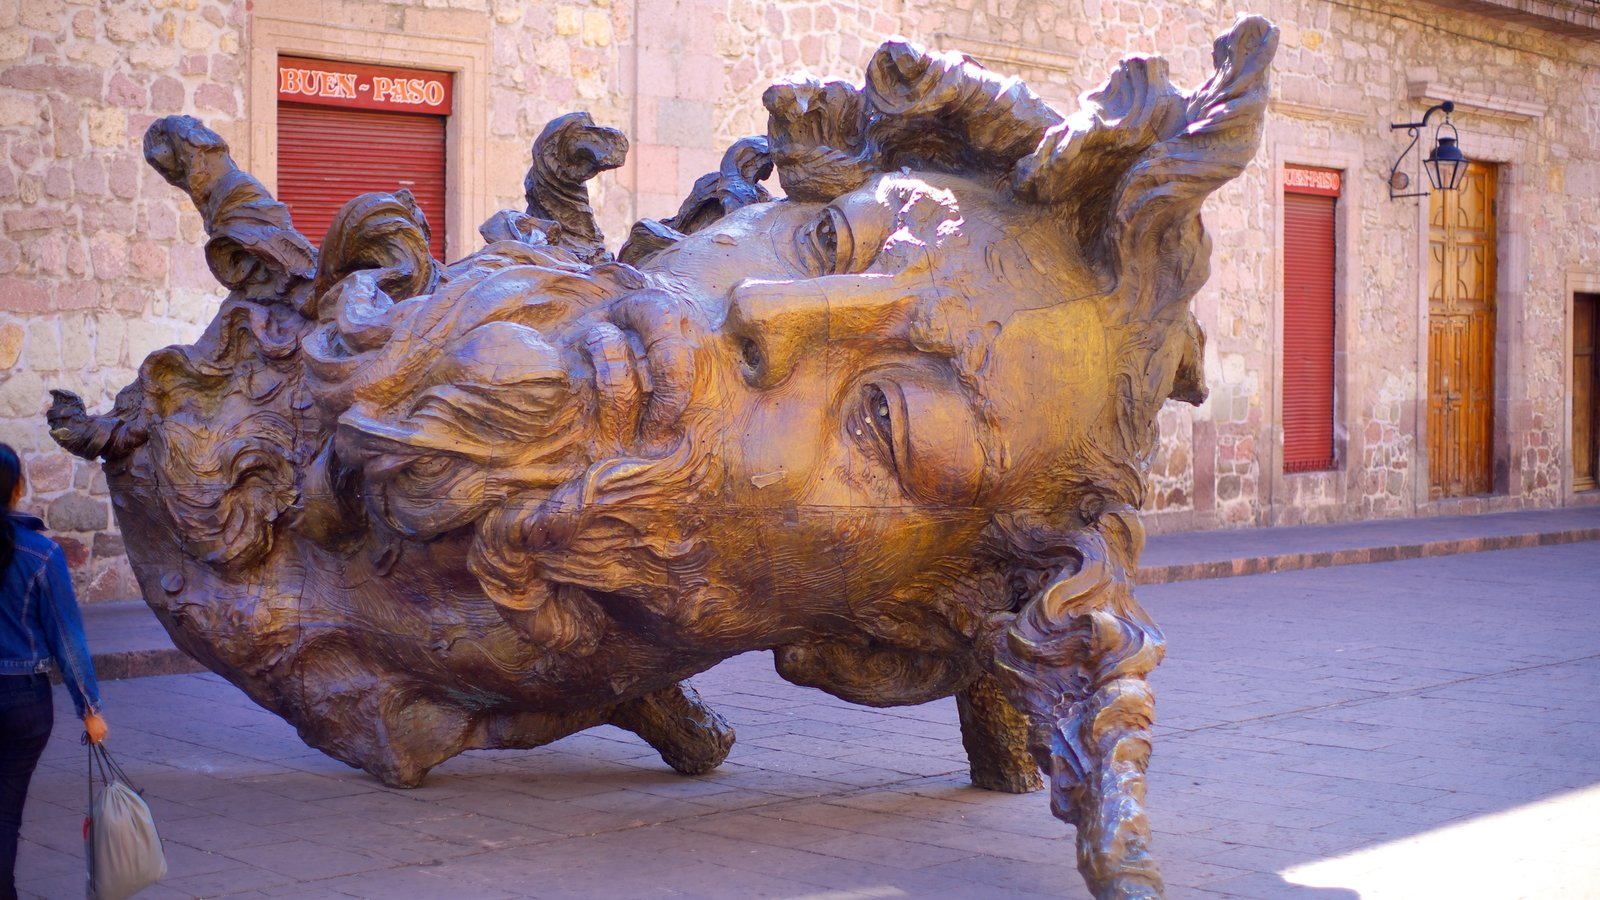 Morelia which includes outdoor art and a statue or sculpture